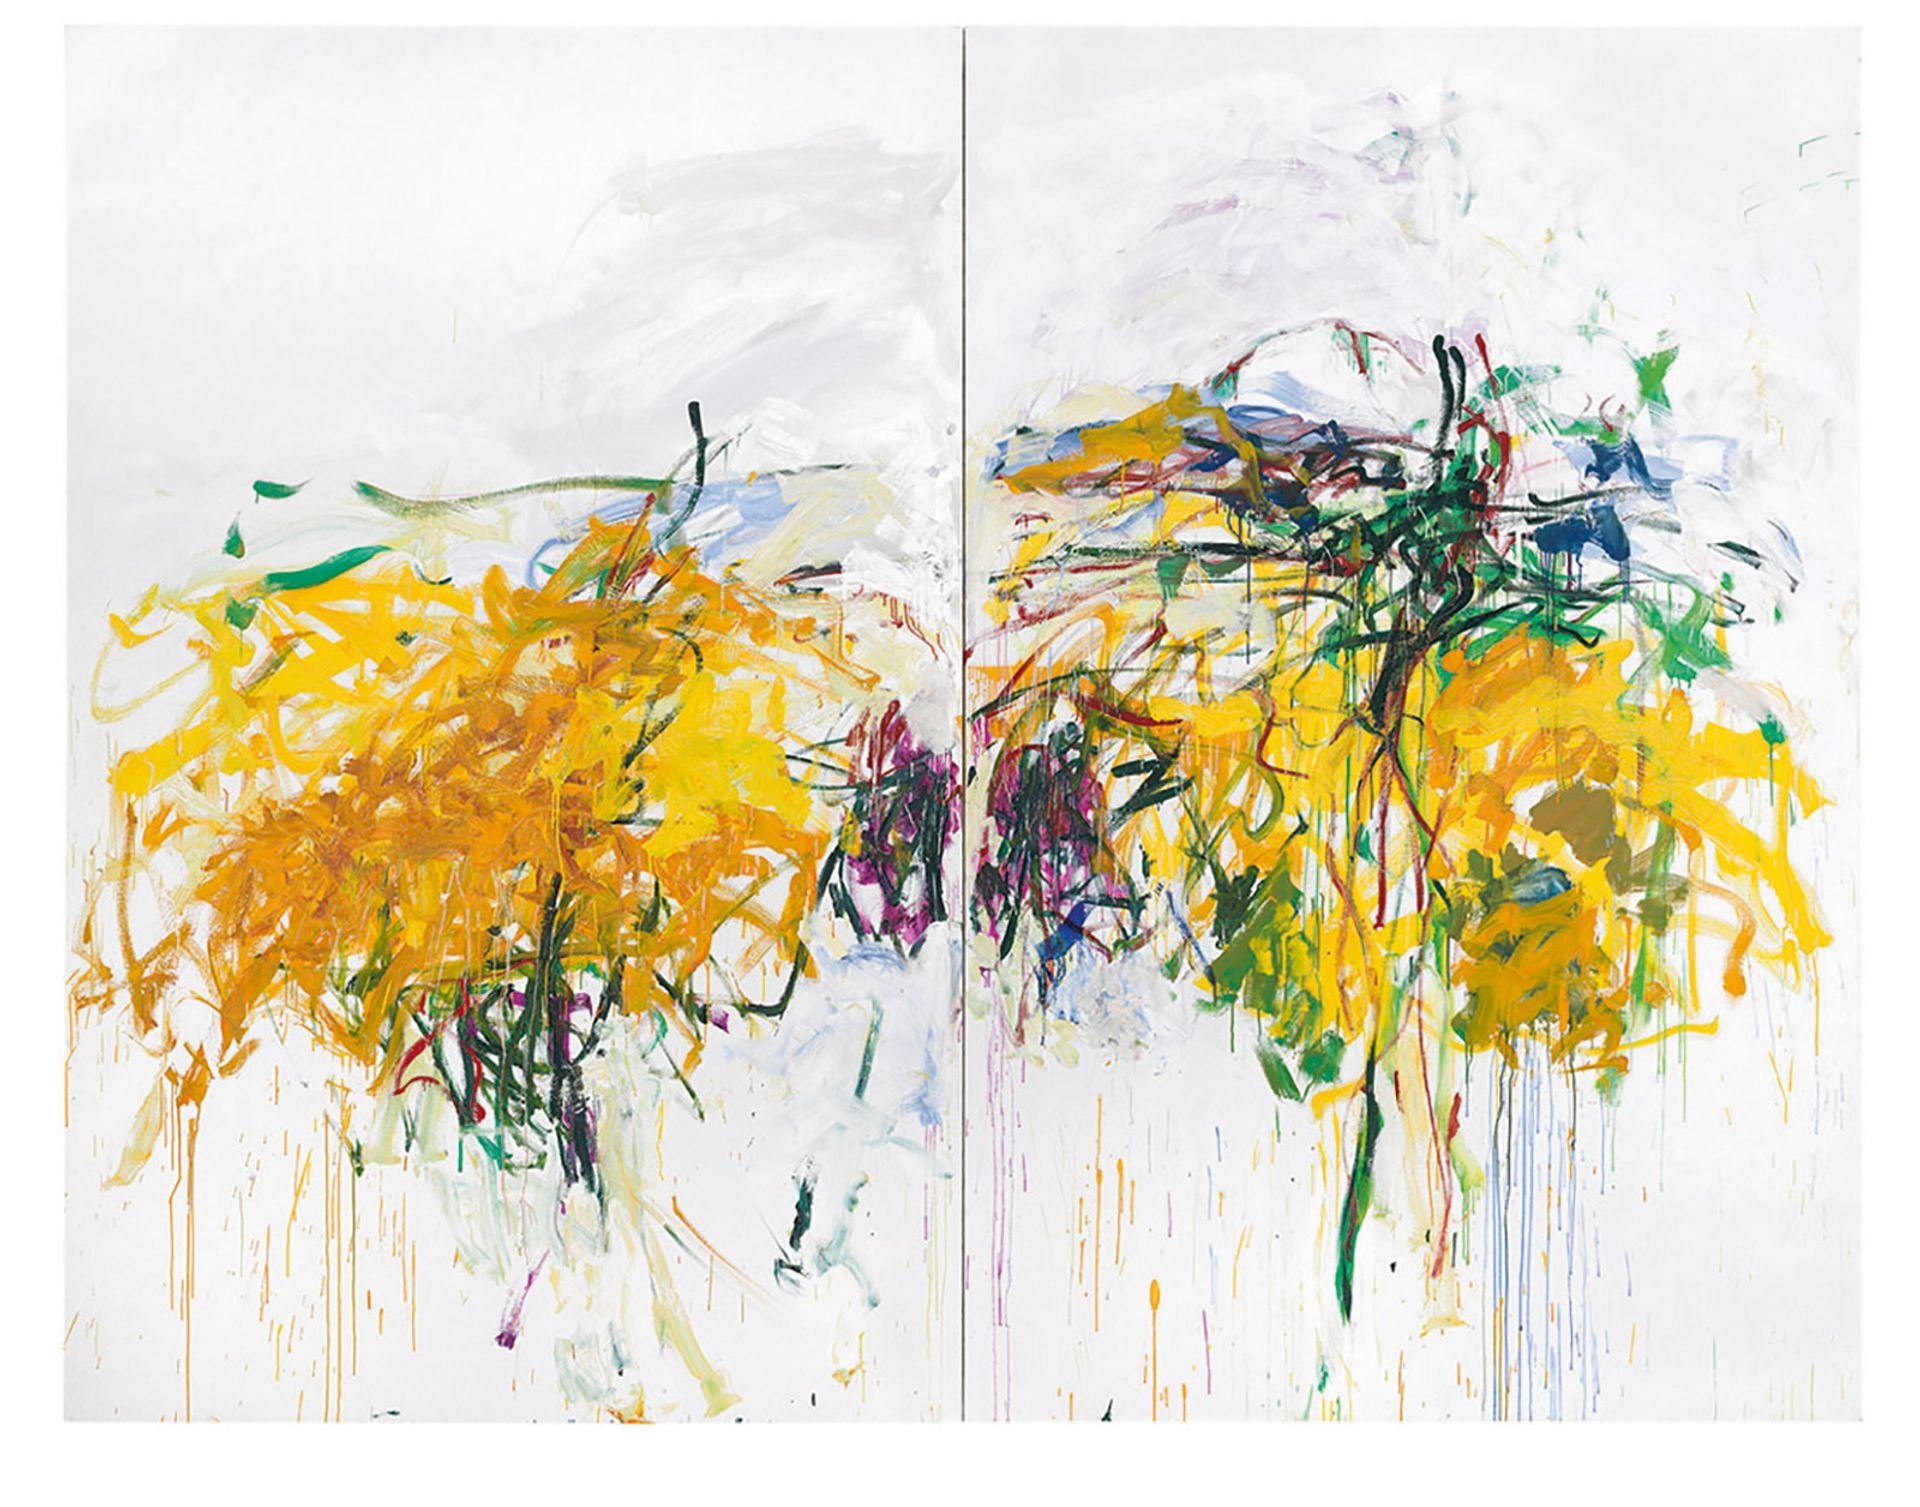 The survey will include Joan Mitchell's Untitled (1992), from the Komal Shah and Gaurav Garg collection Mitchell: © Estate of Joan Mitchell, courtesy of Cheim & Read, New York